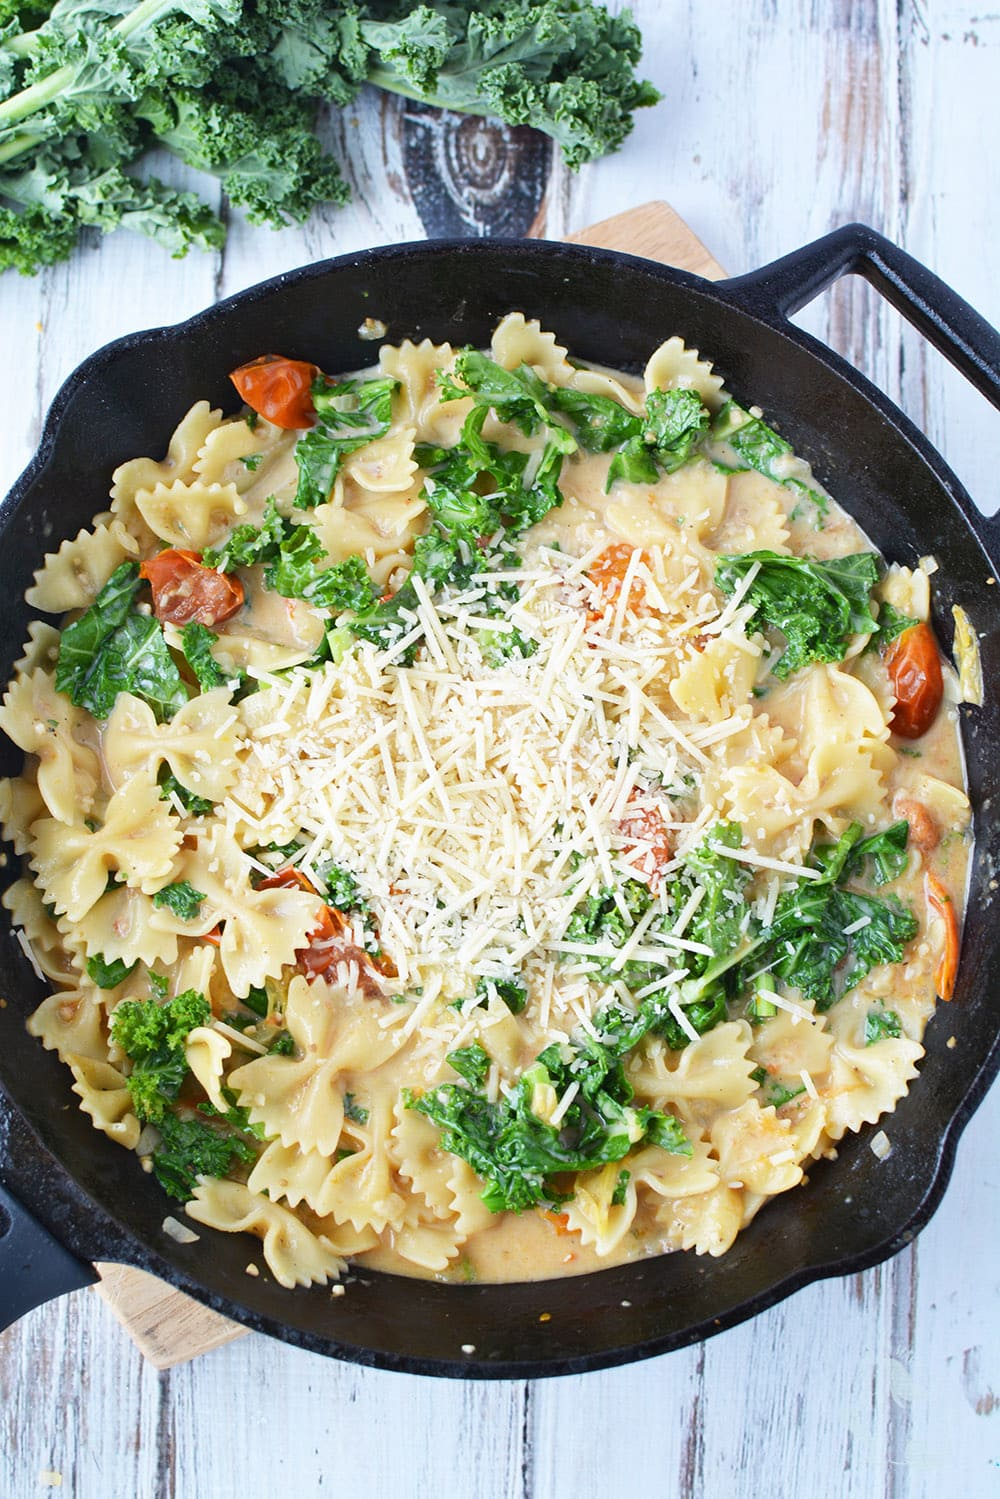 Meatless pasta recipe with kale